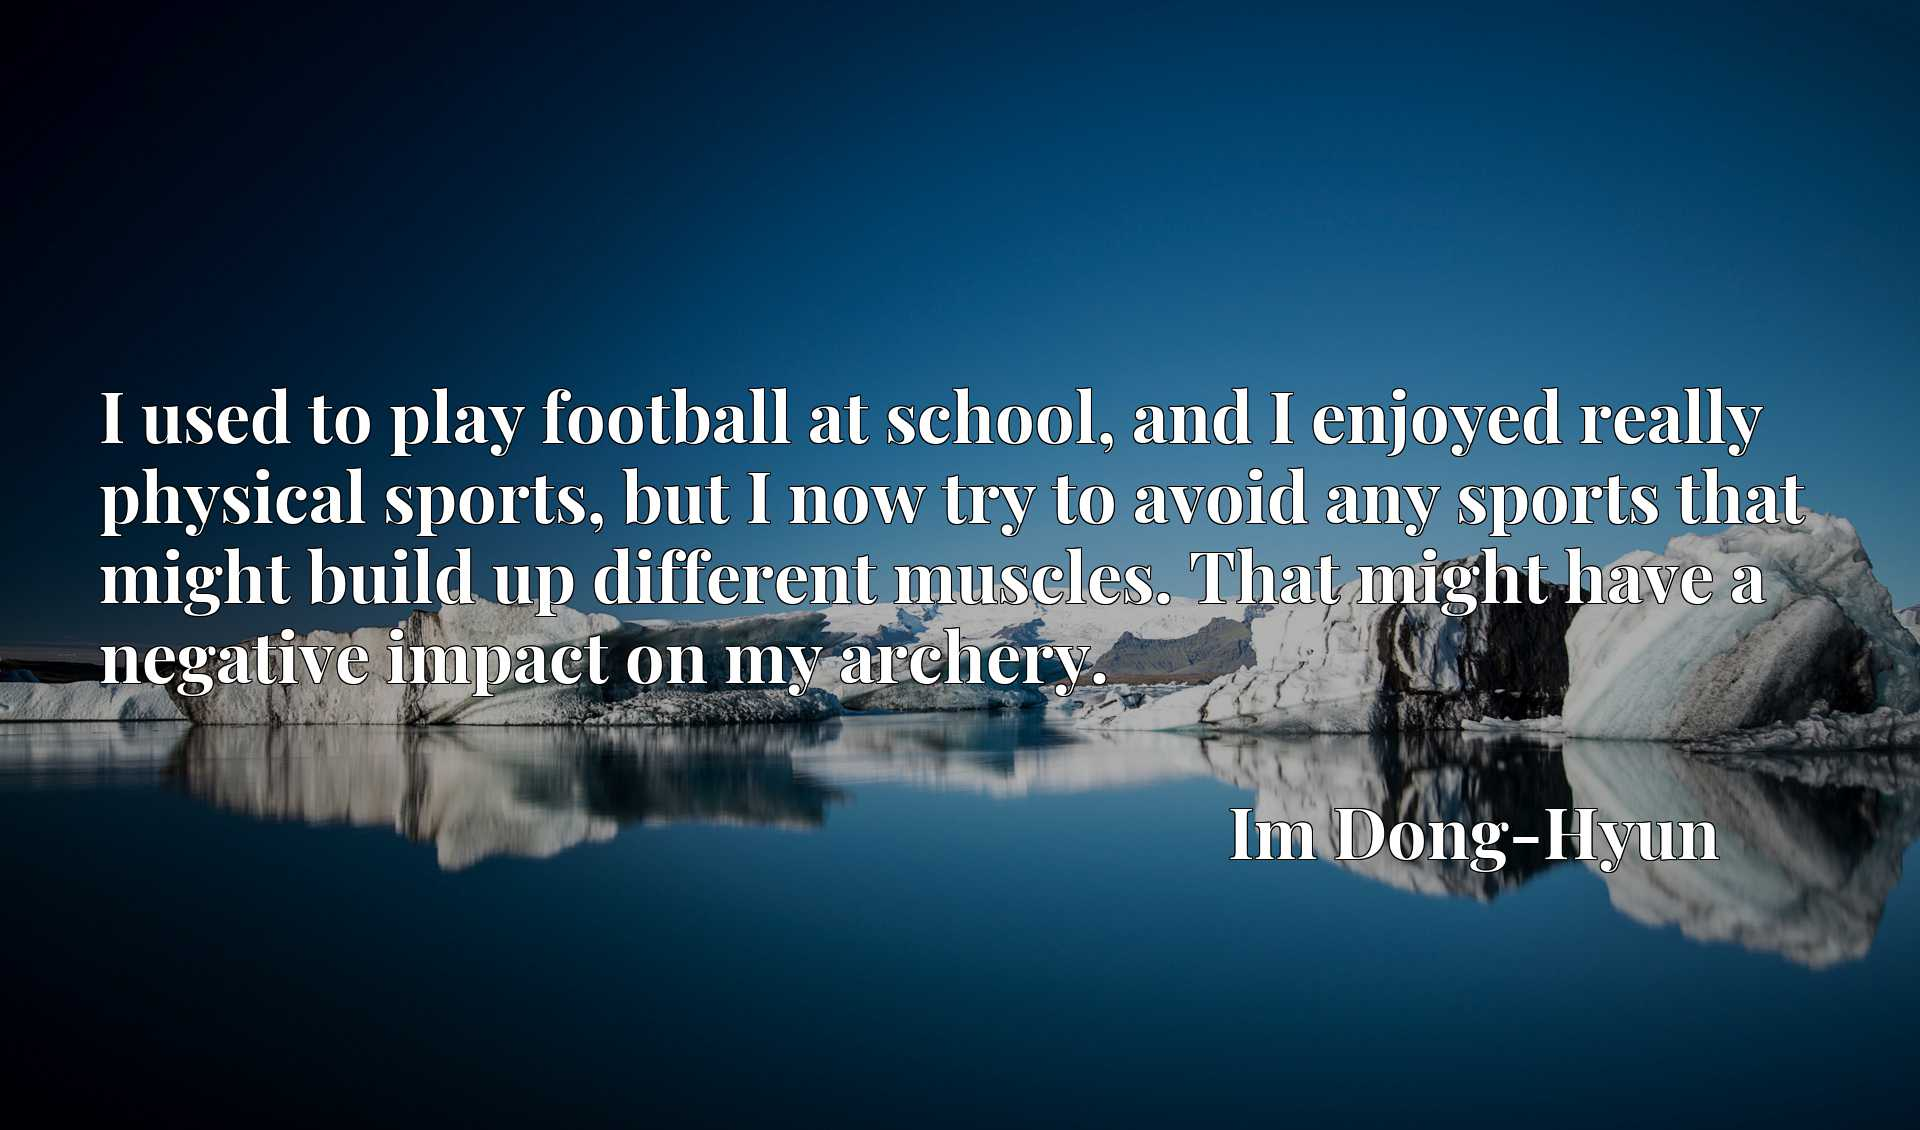 Quote Picture :I used to play football at school, and I enjoyed really physical sports, but I now try to avoid any sports that might build up different muscles. That might have a negative impact on my archery.